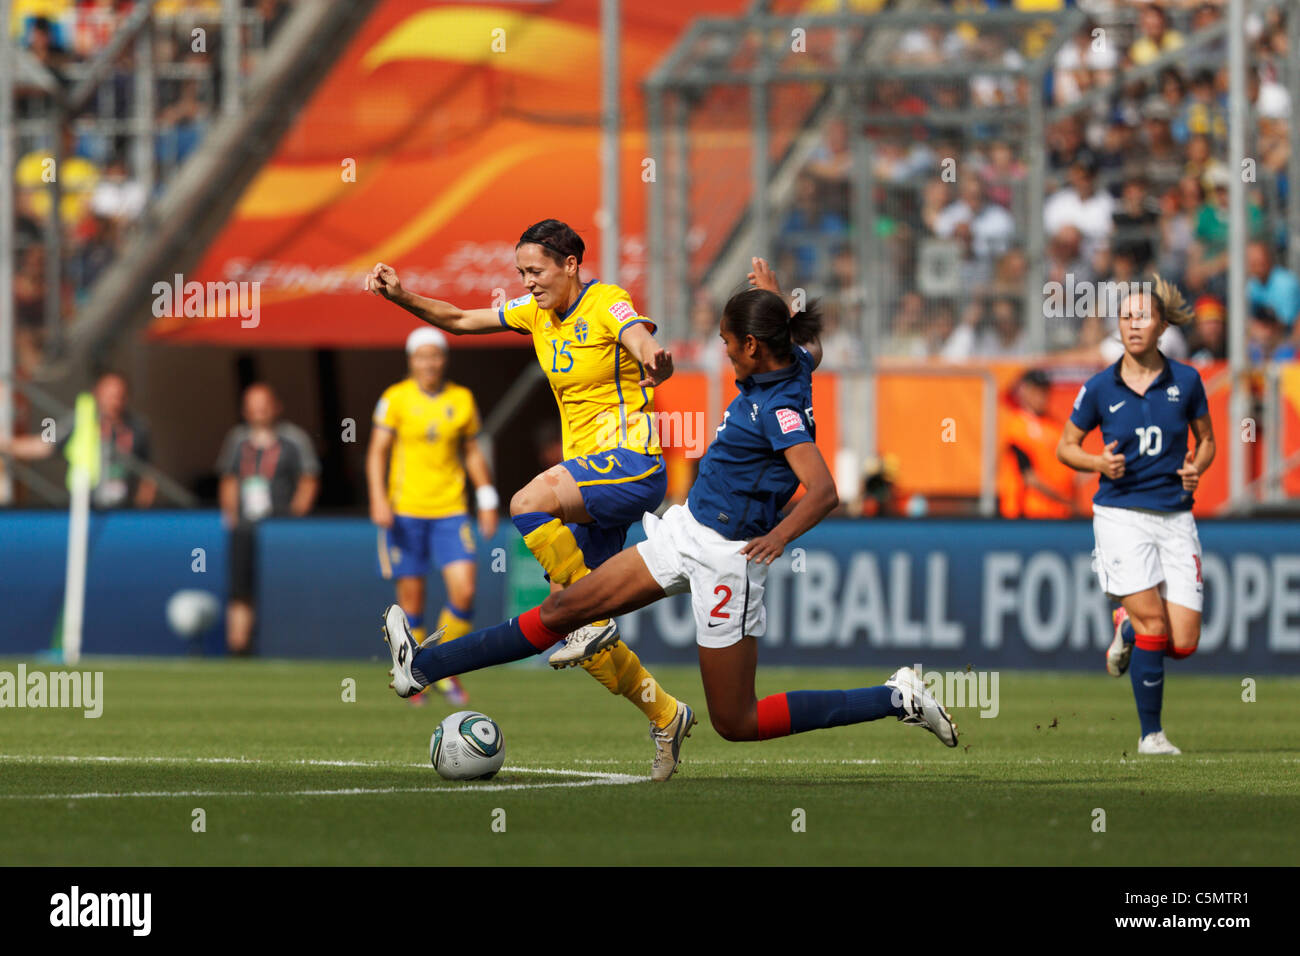 Wendy renard interview - Wendie Renard Of France 2 Tries To Tackle The Ball From Therese Sjogran Of